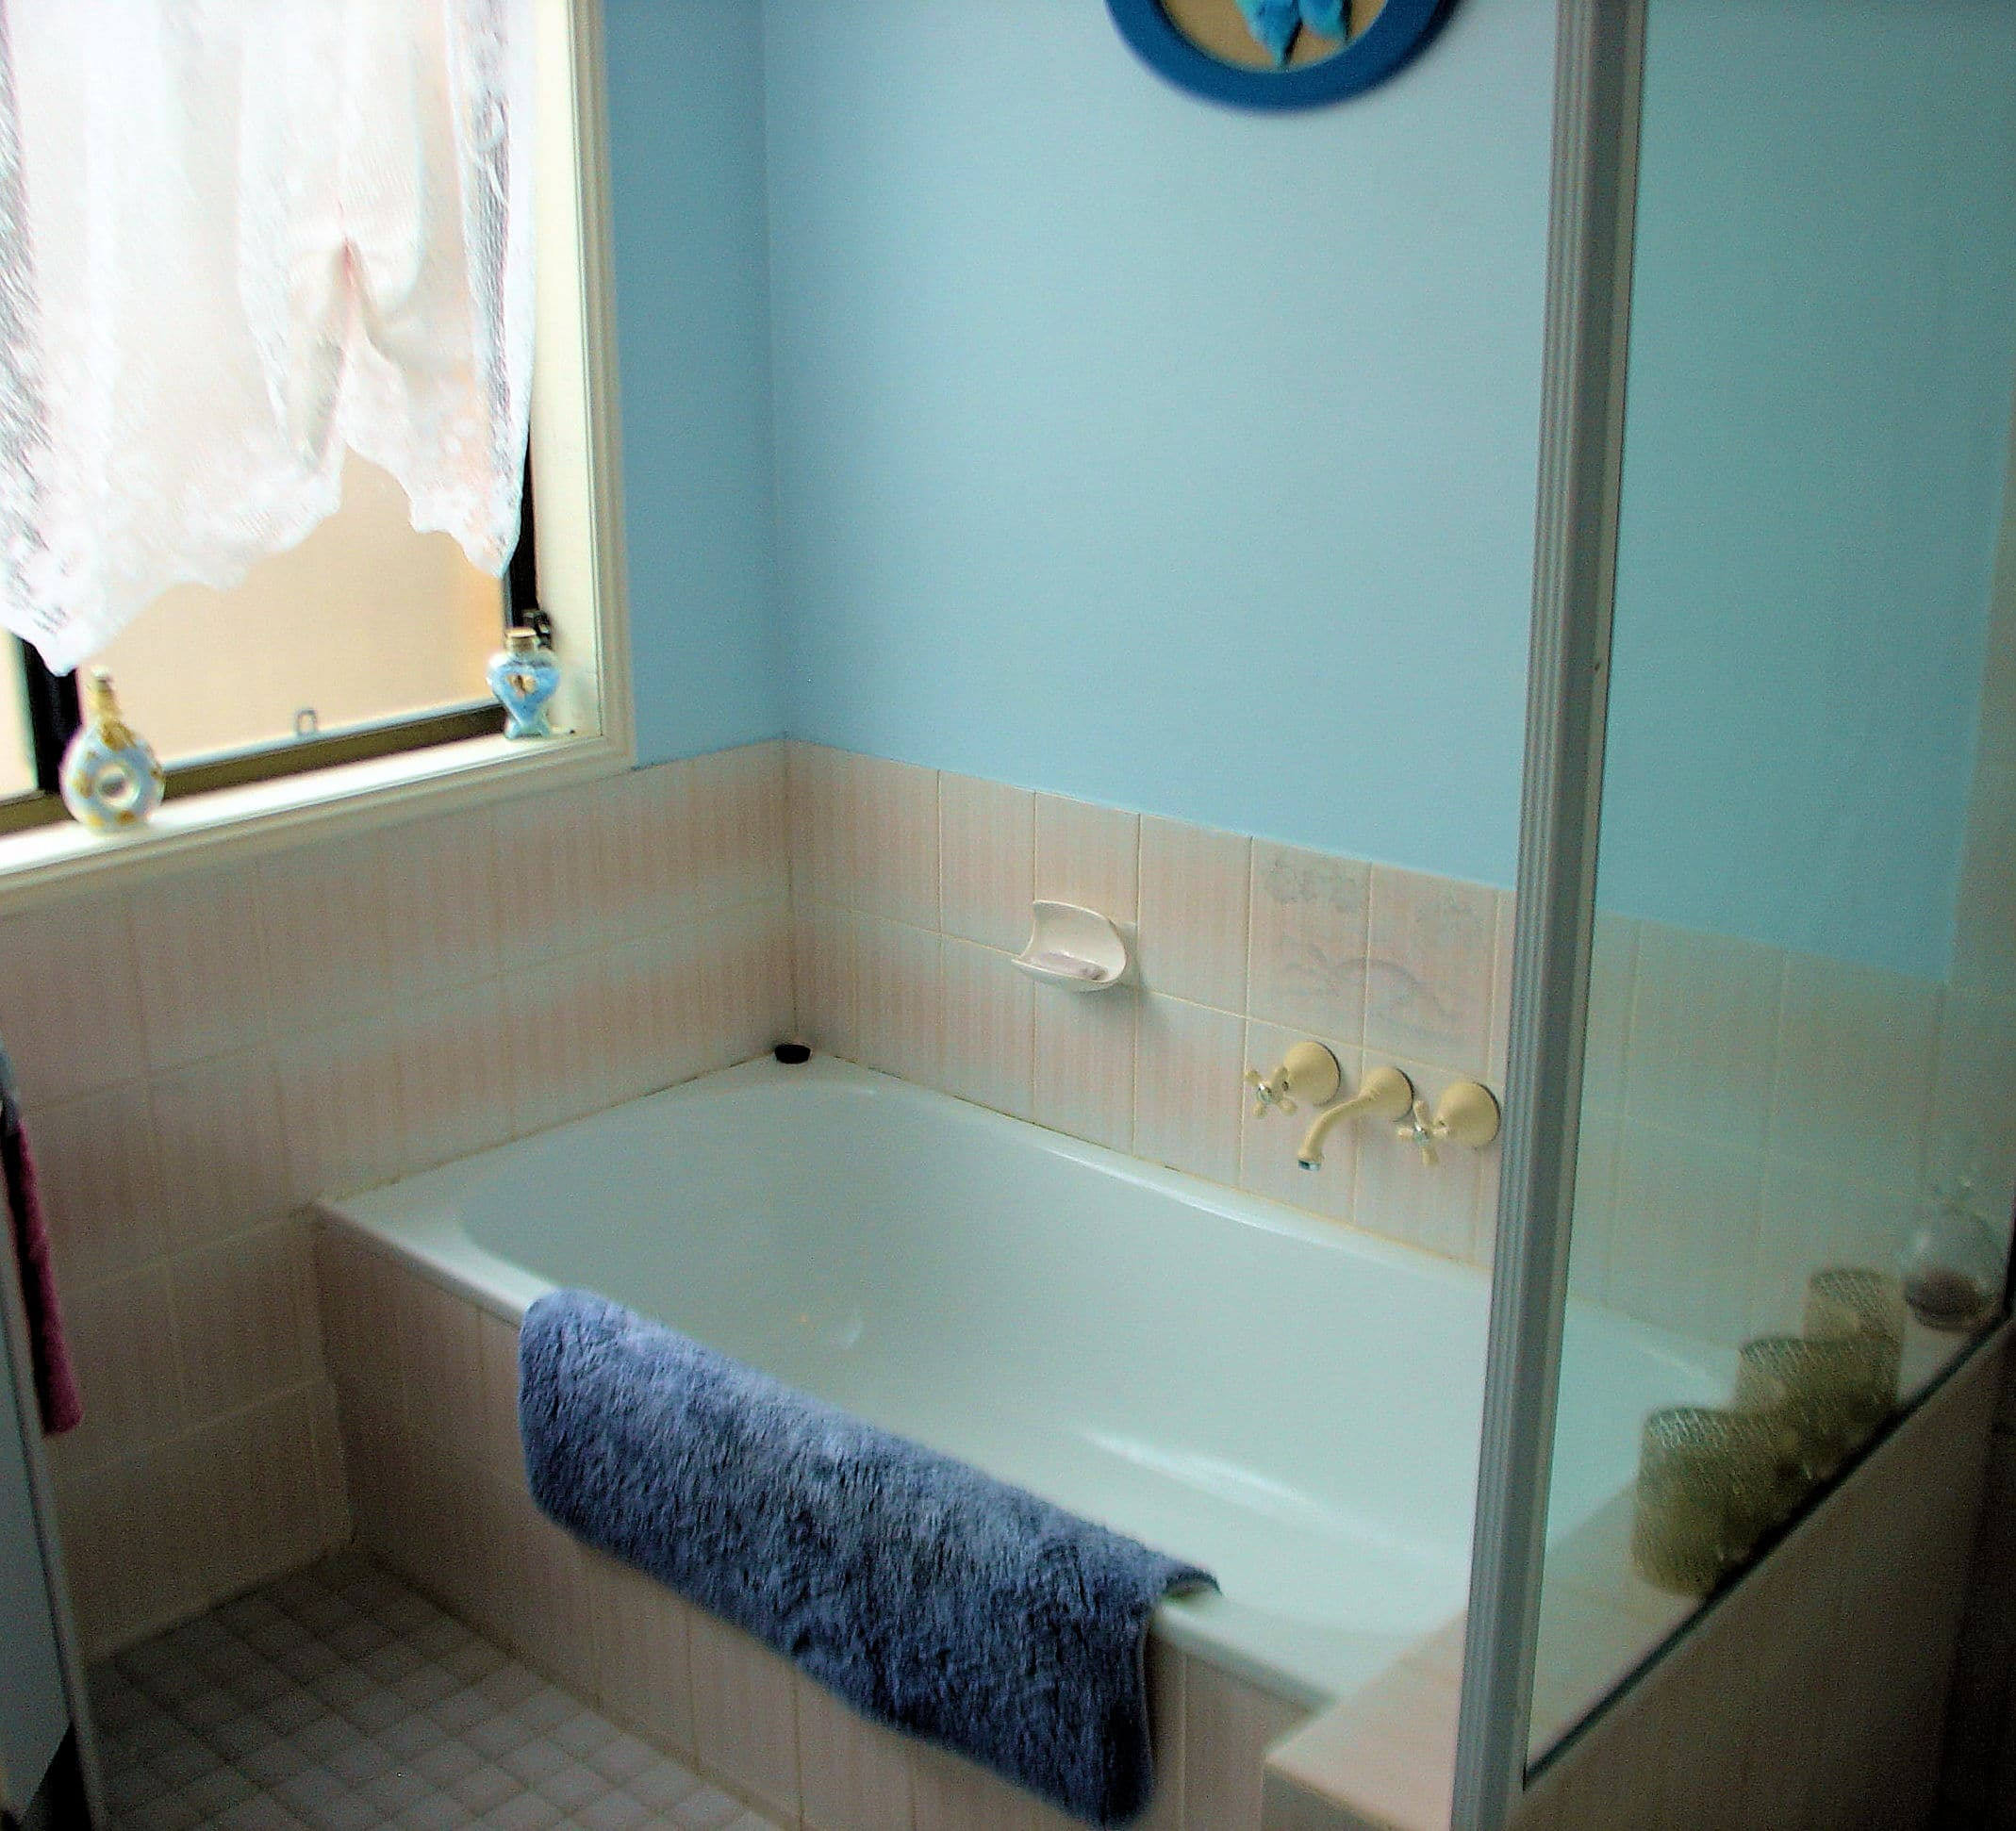 Bathroom Renovation Costs Don't Need to Blow Out 1